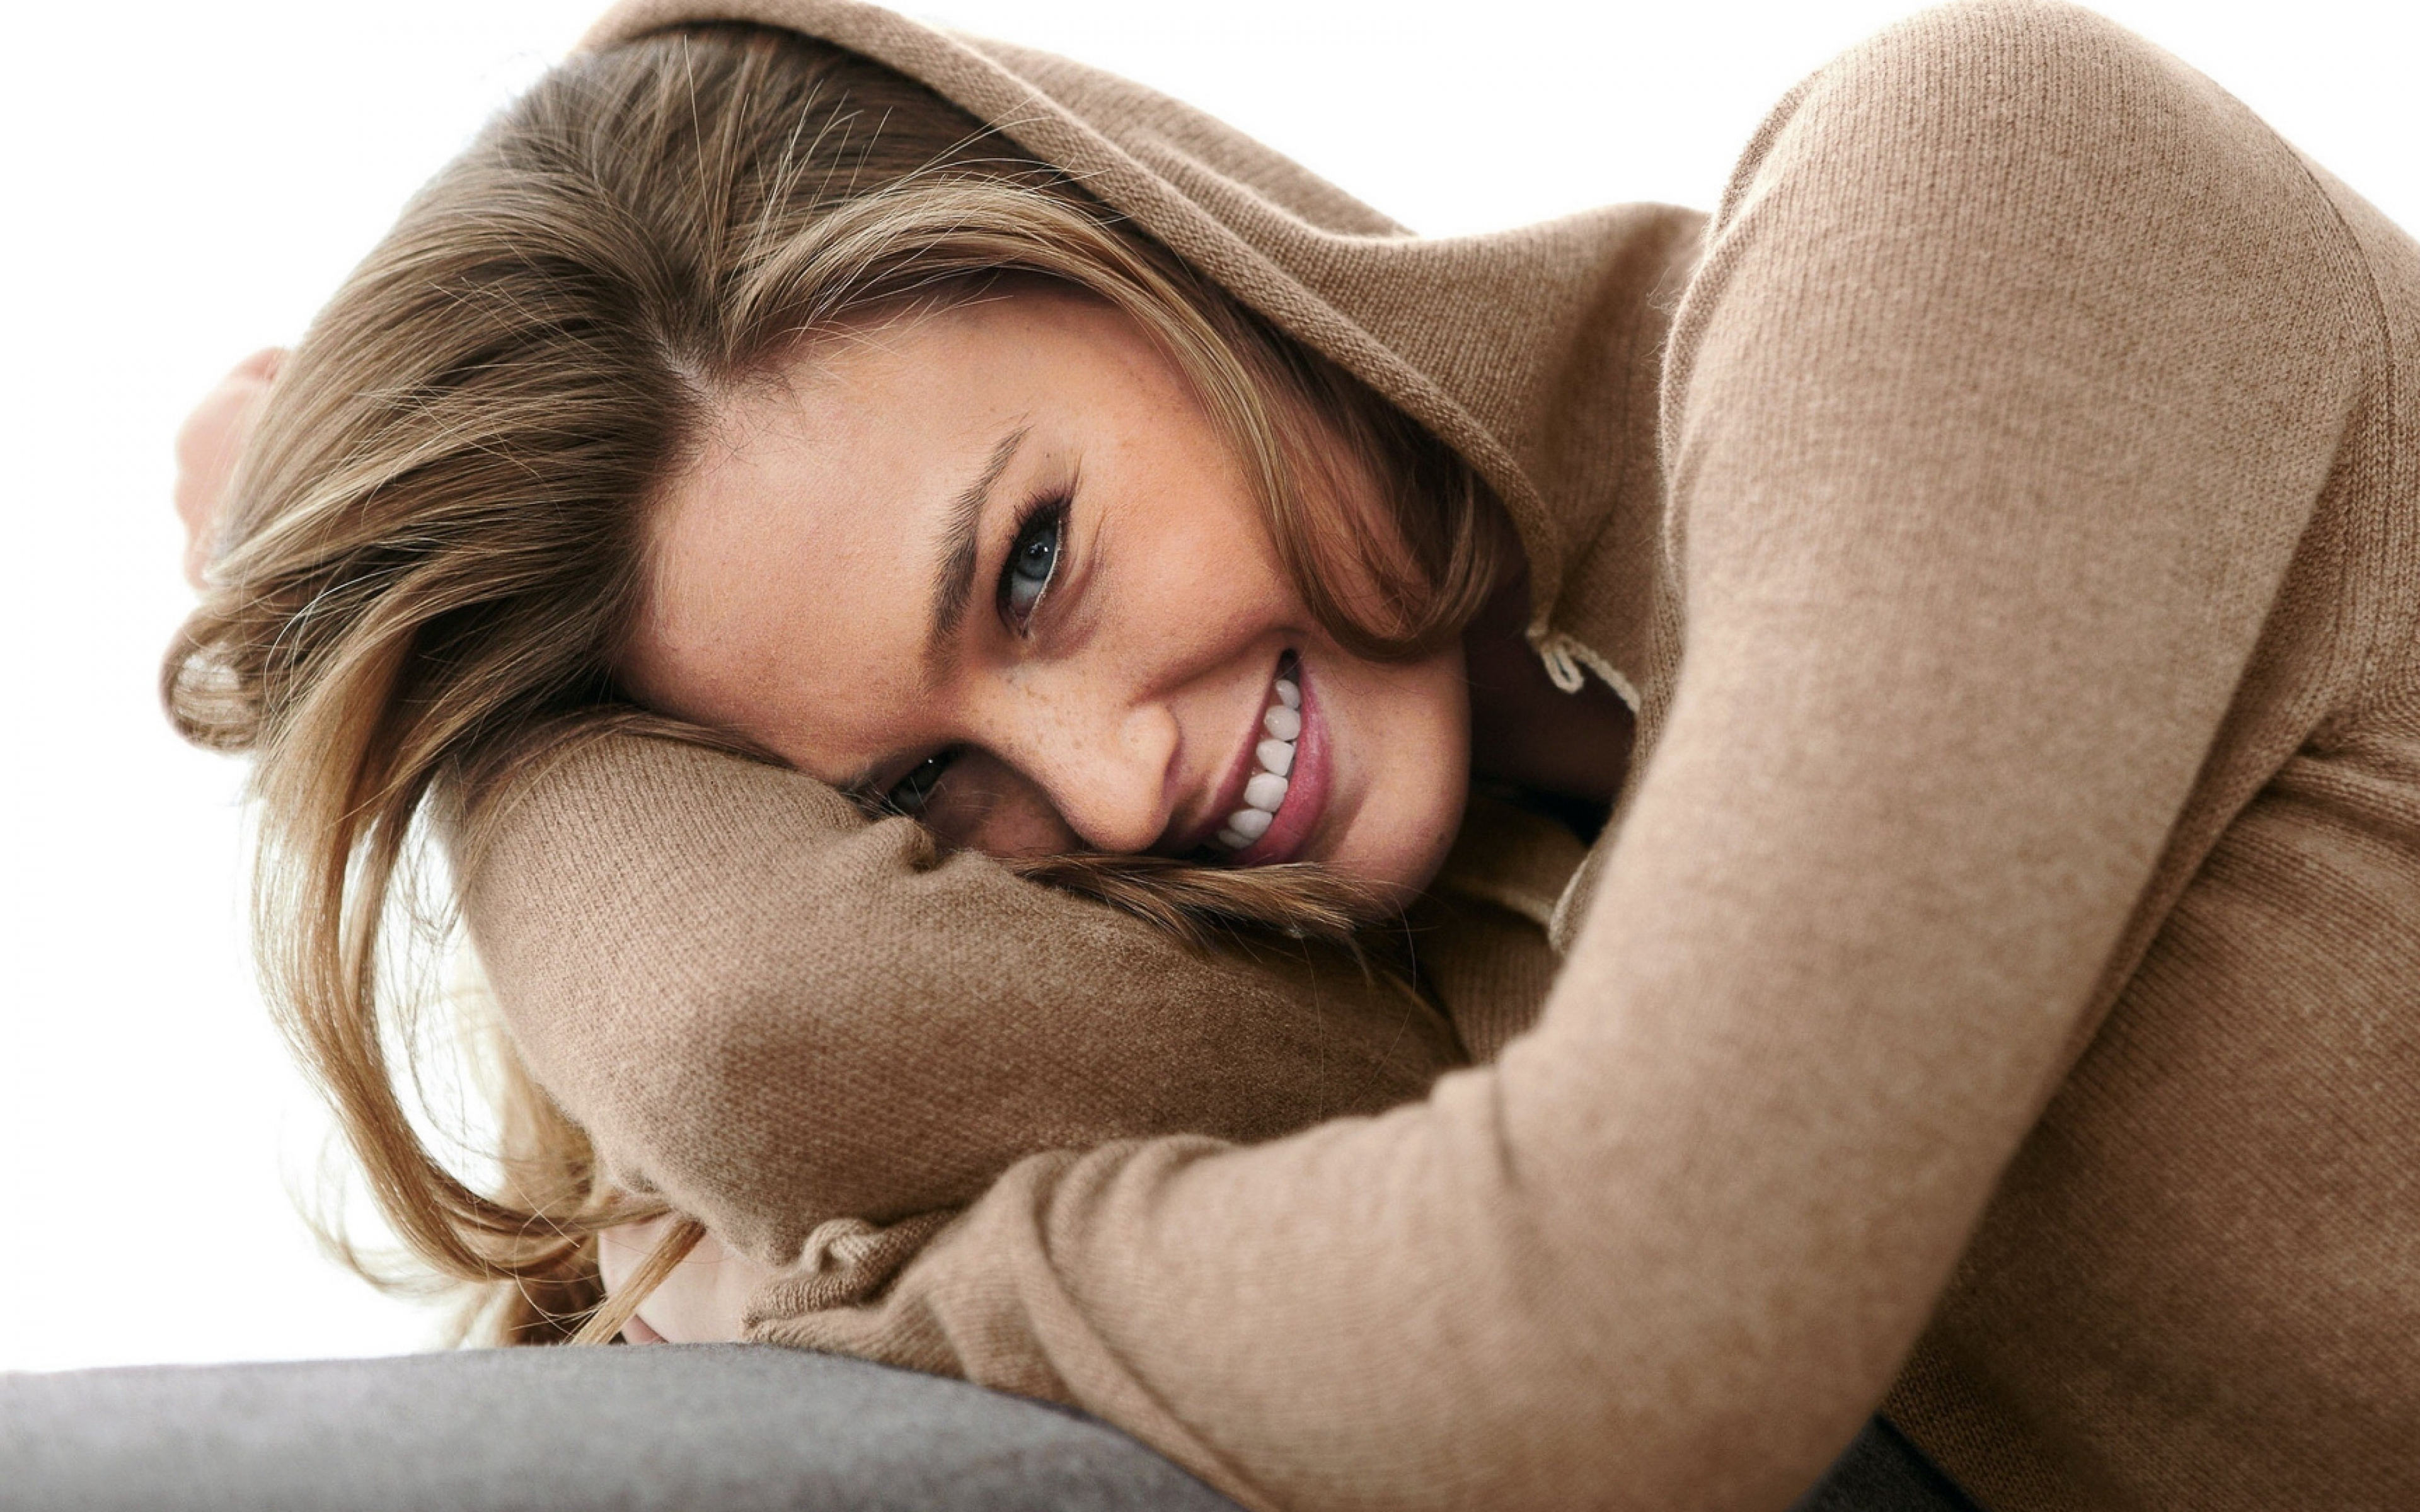 smiling woman images - HD 1440×900